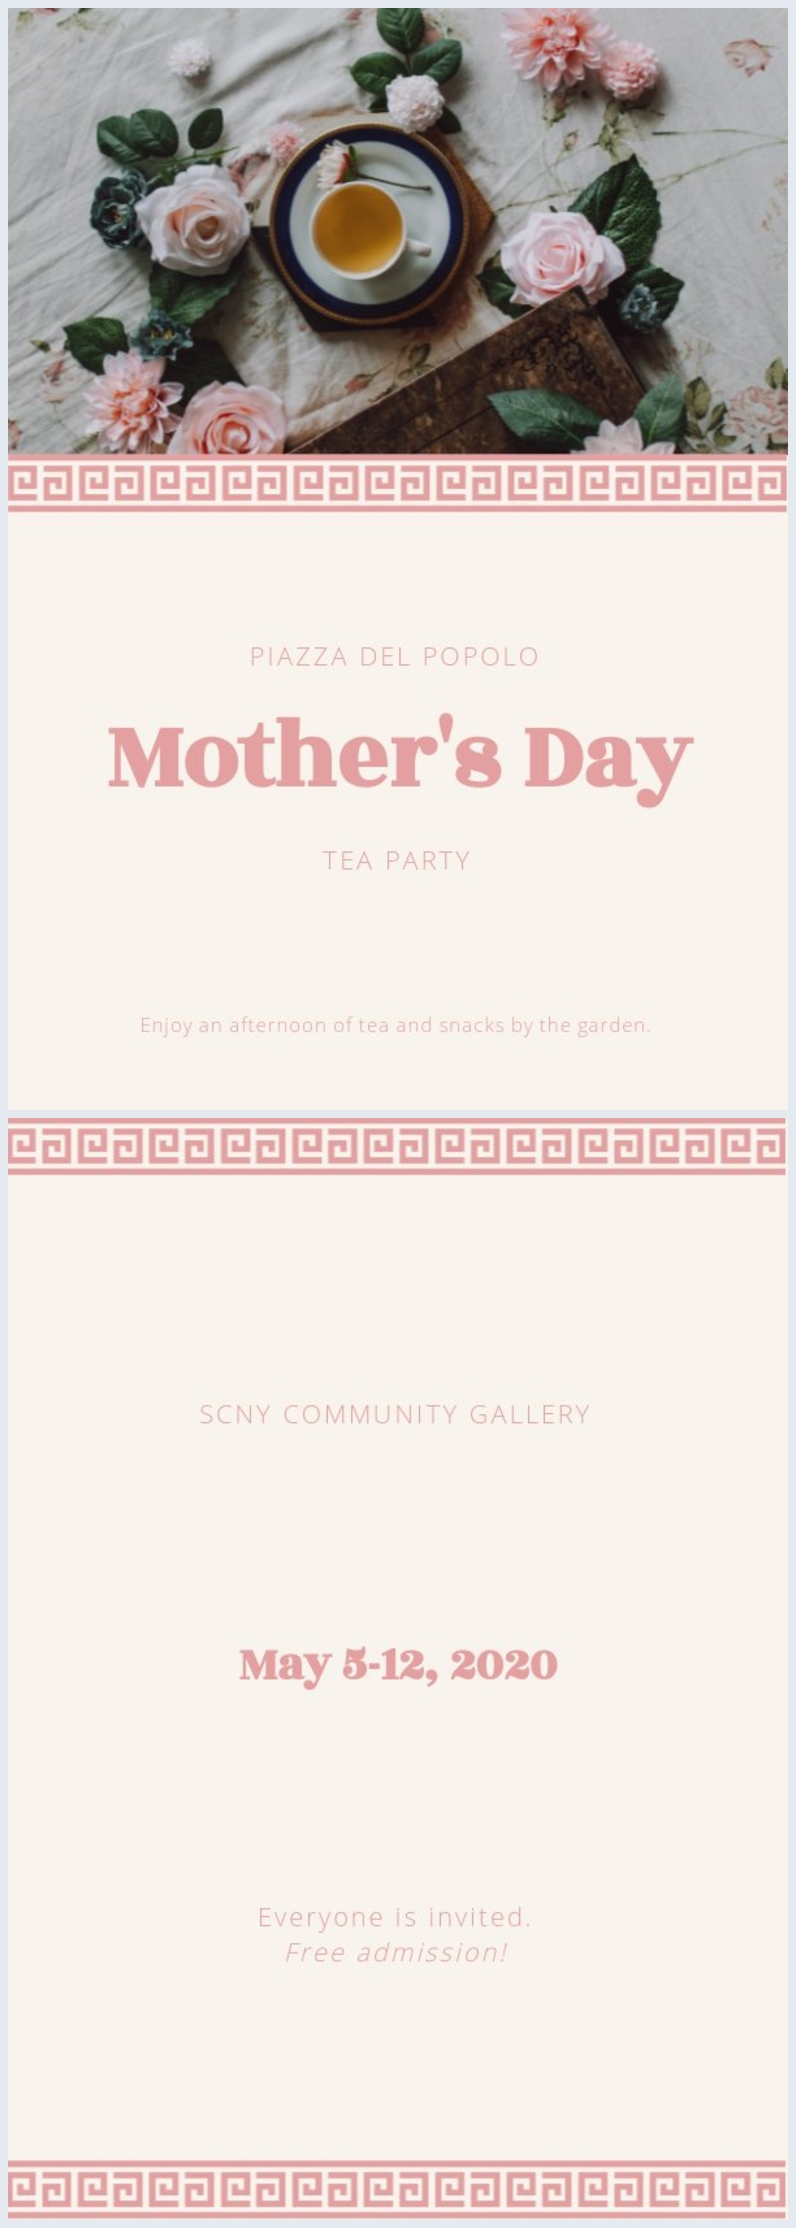 Elegant Mother's Day tea party invitation layout